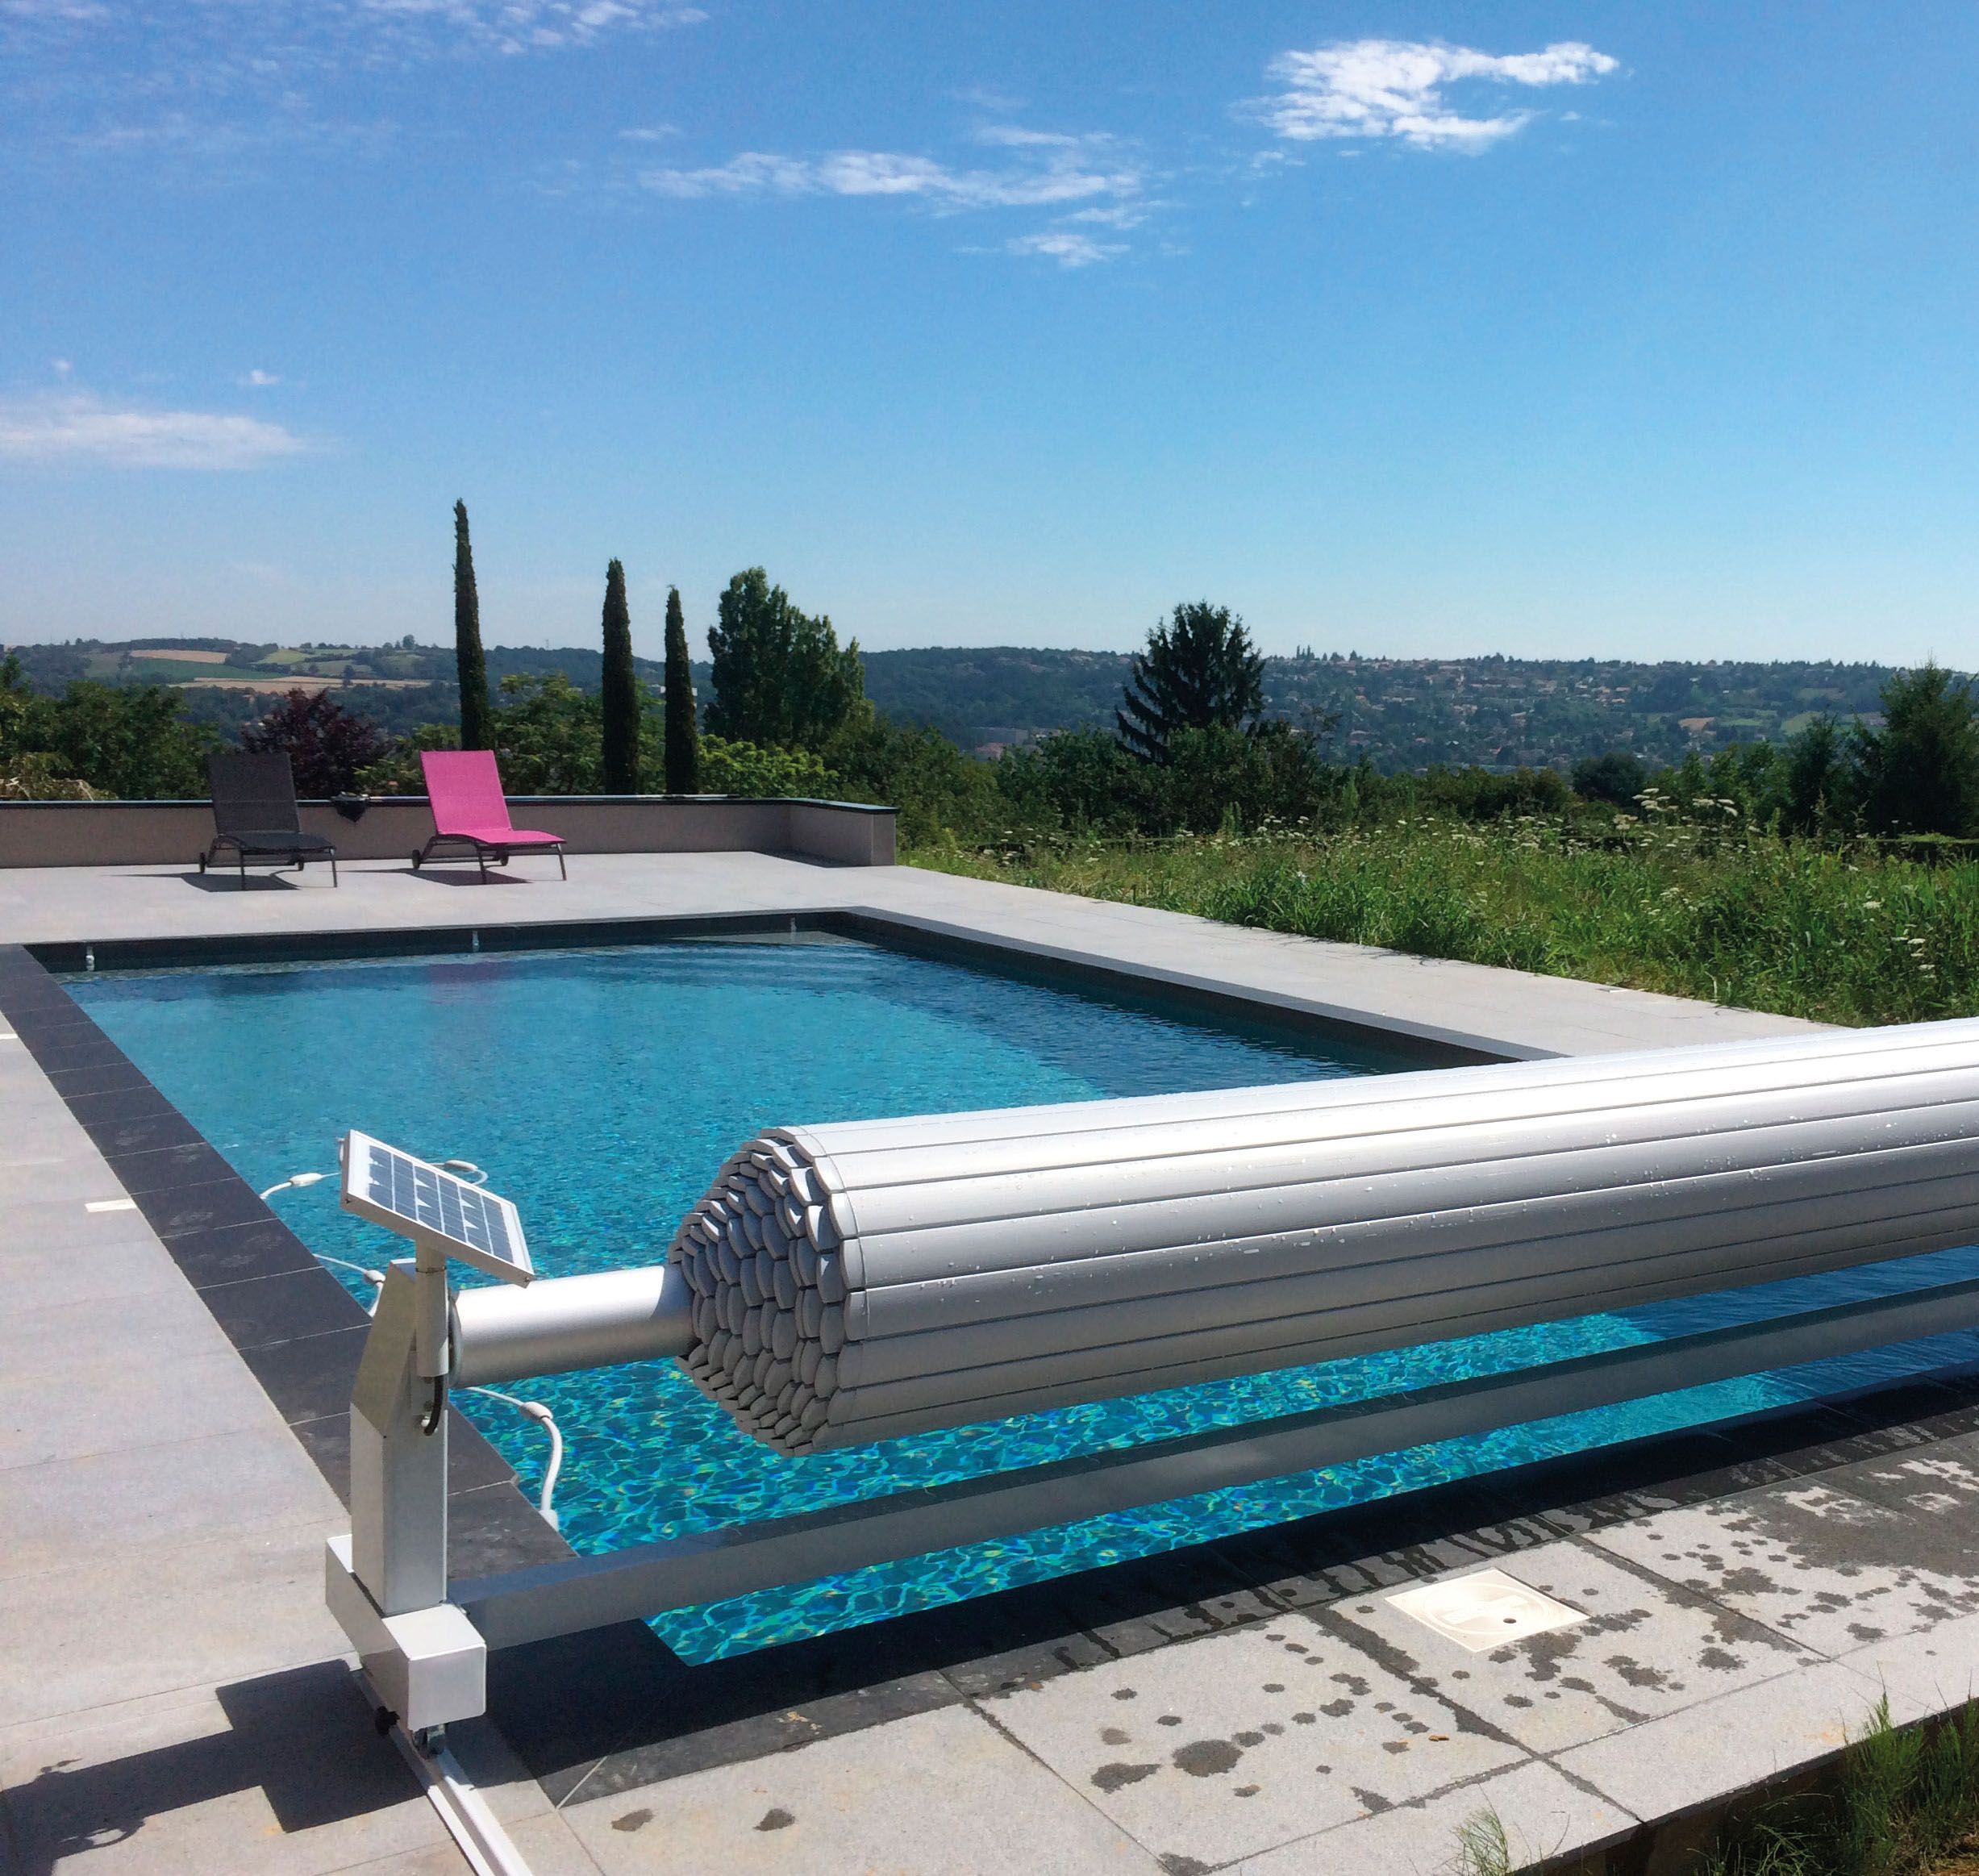 Volet de piscine mobile pour piscine 10m x 10m. Fabrication